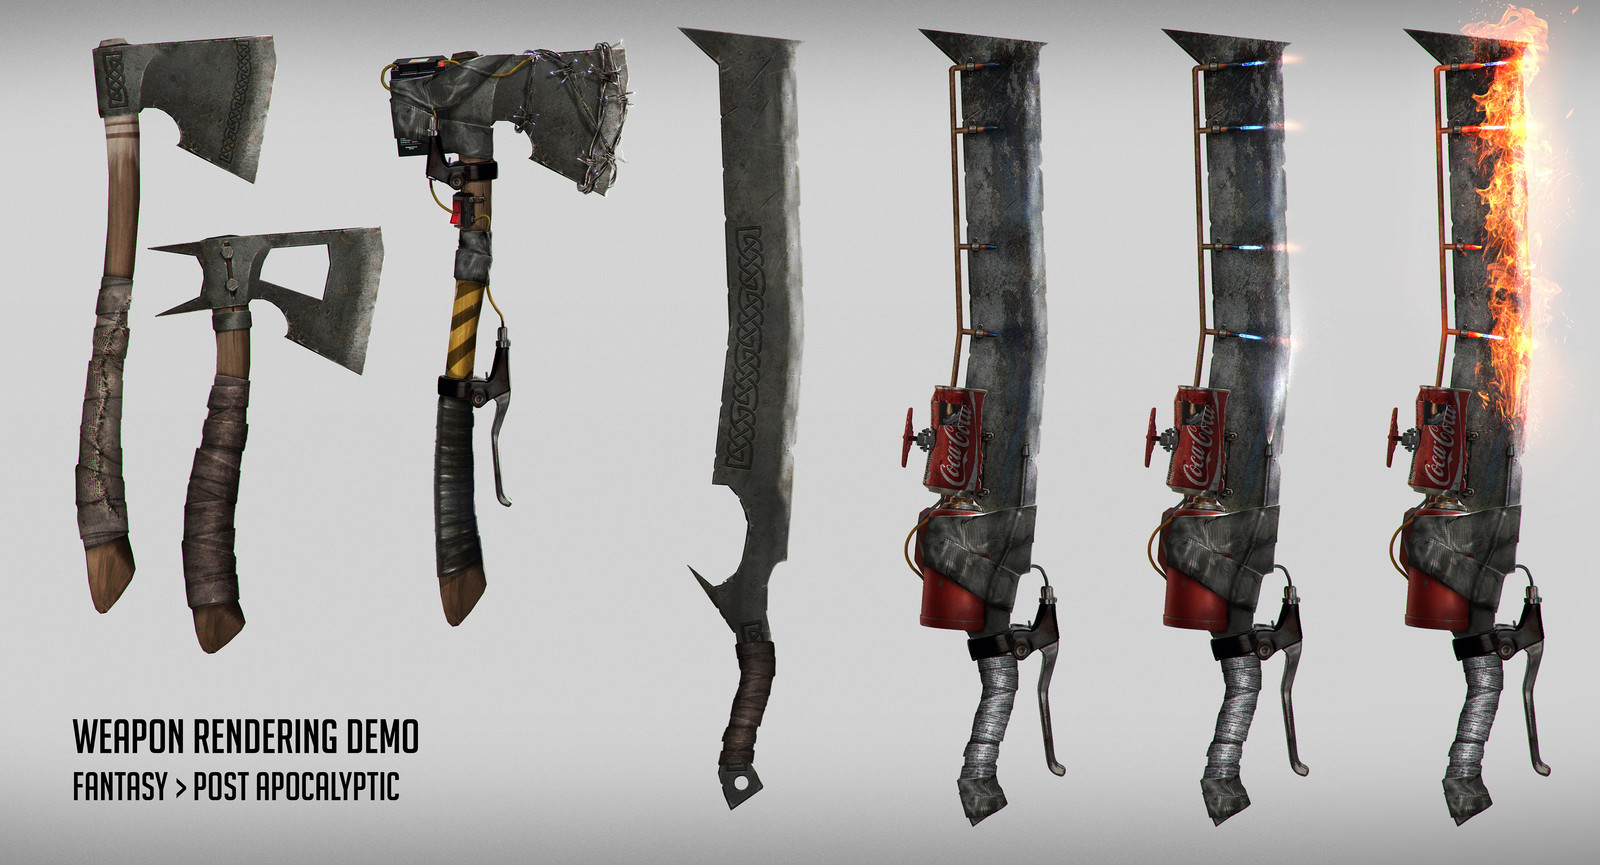 Weapon rendering demo